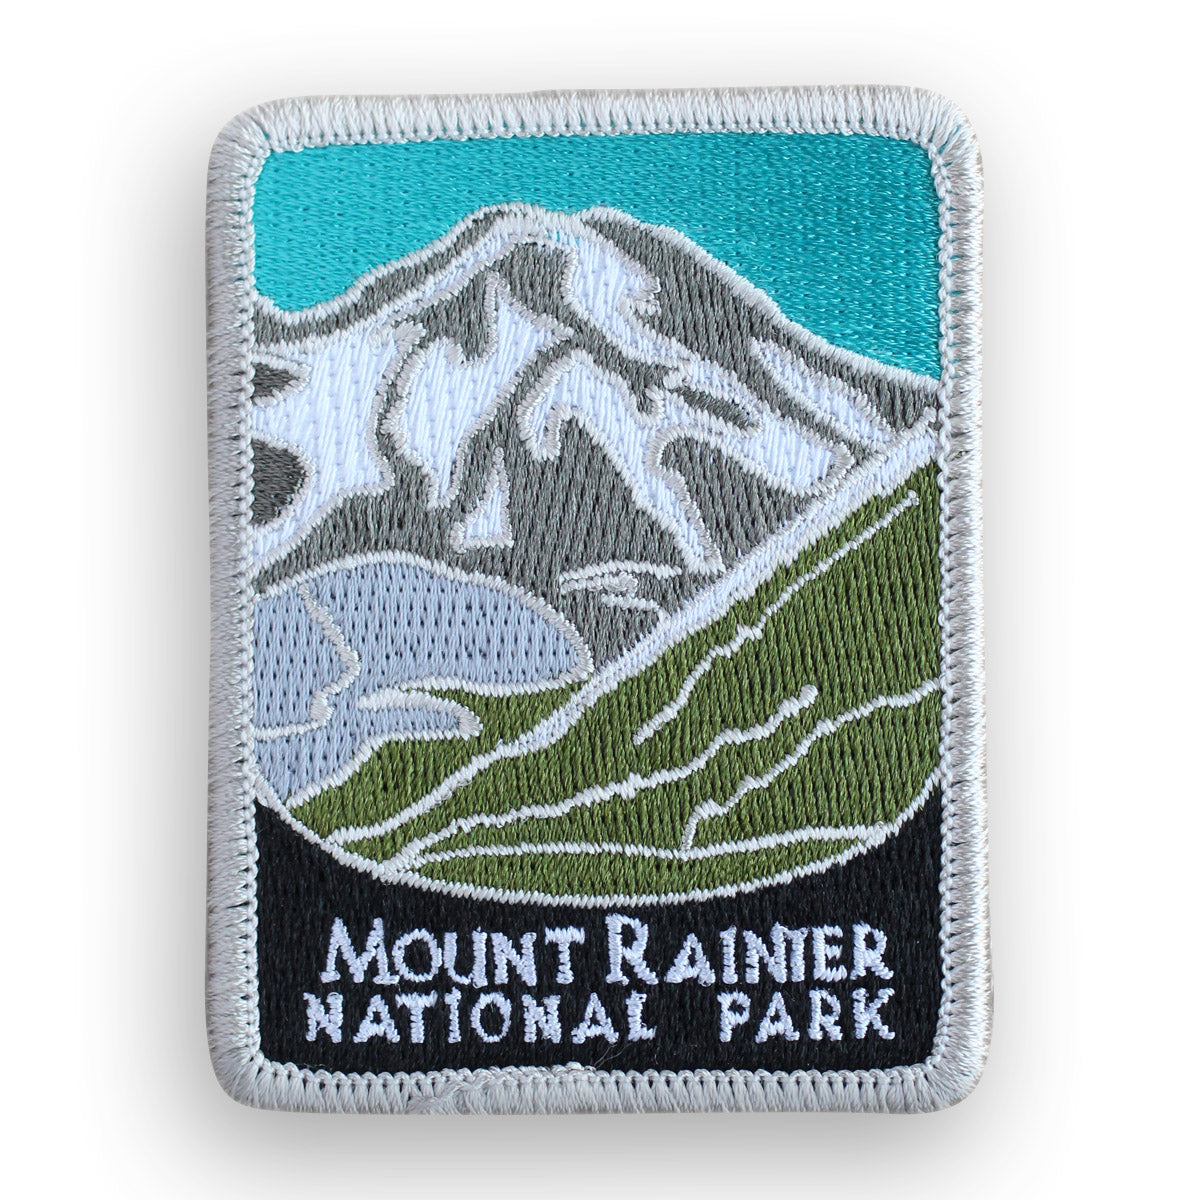 Mount Rainier National Park Traveler Patch